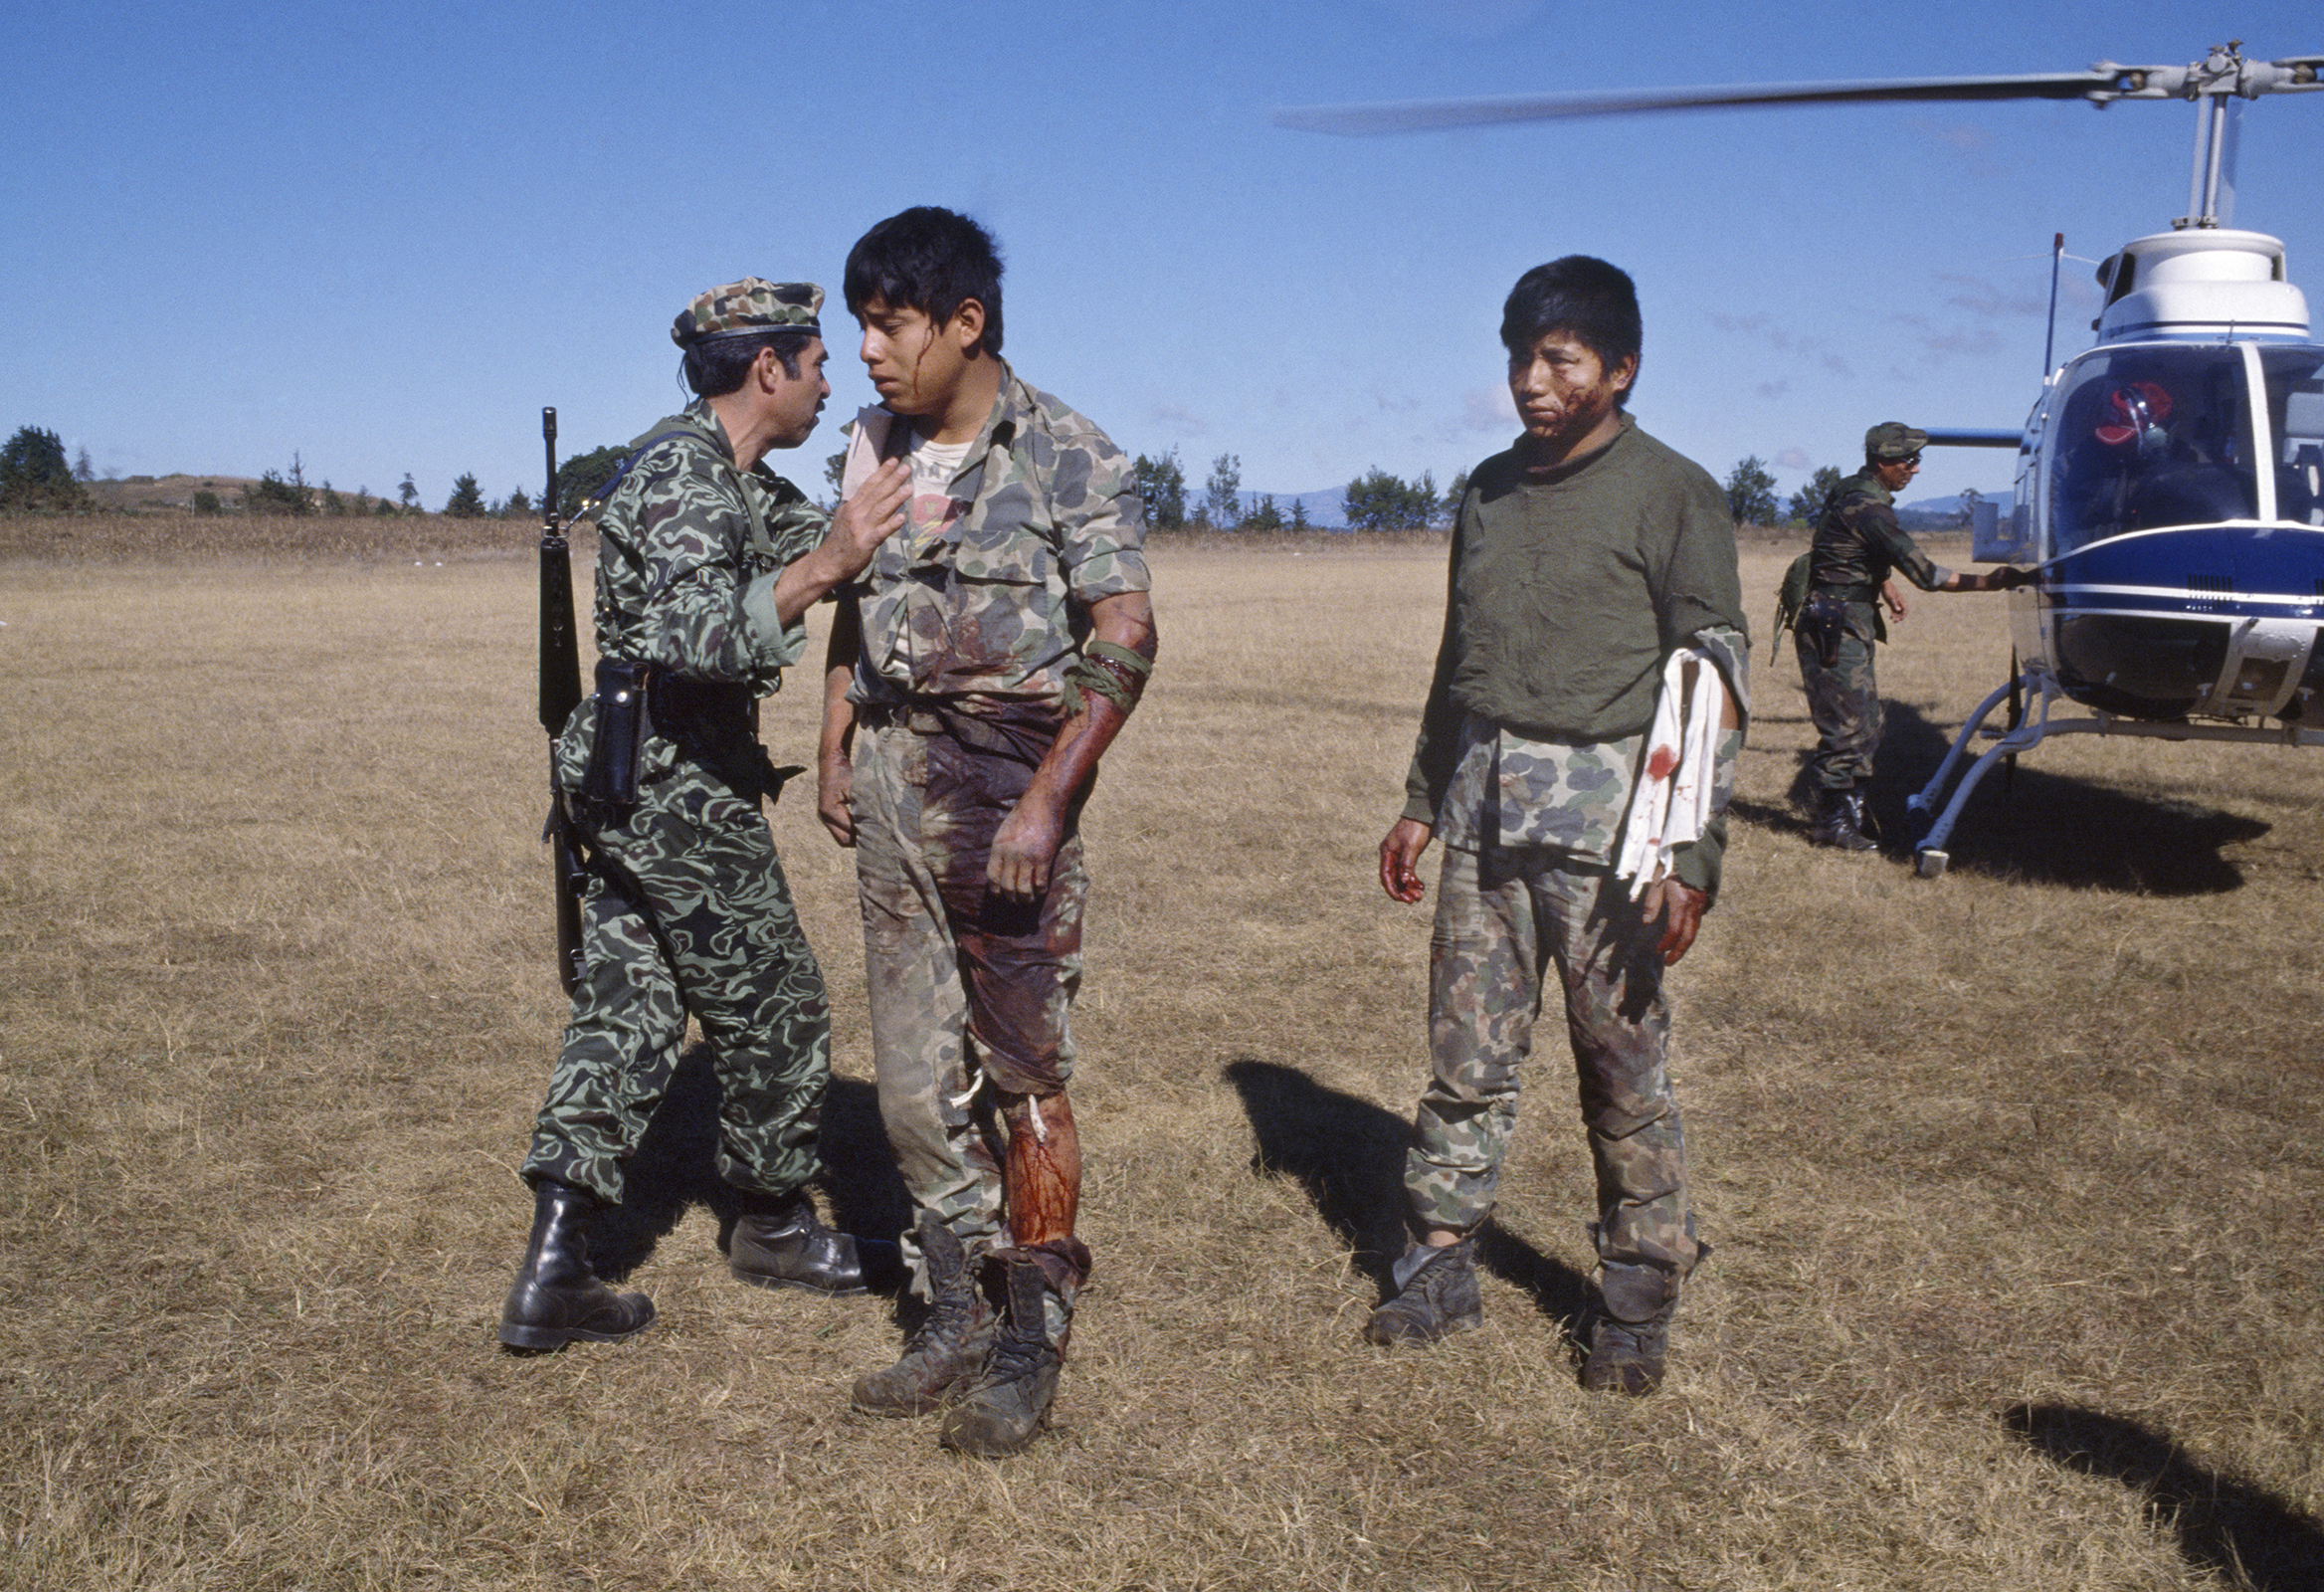 Guatemalan army Colonel Lima Estrada, left, checks on two wounded soldiers brought for medical aid to the army garrison in Santa Cruz del Quiché, Guatemala, January 20, 1982.